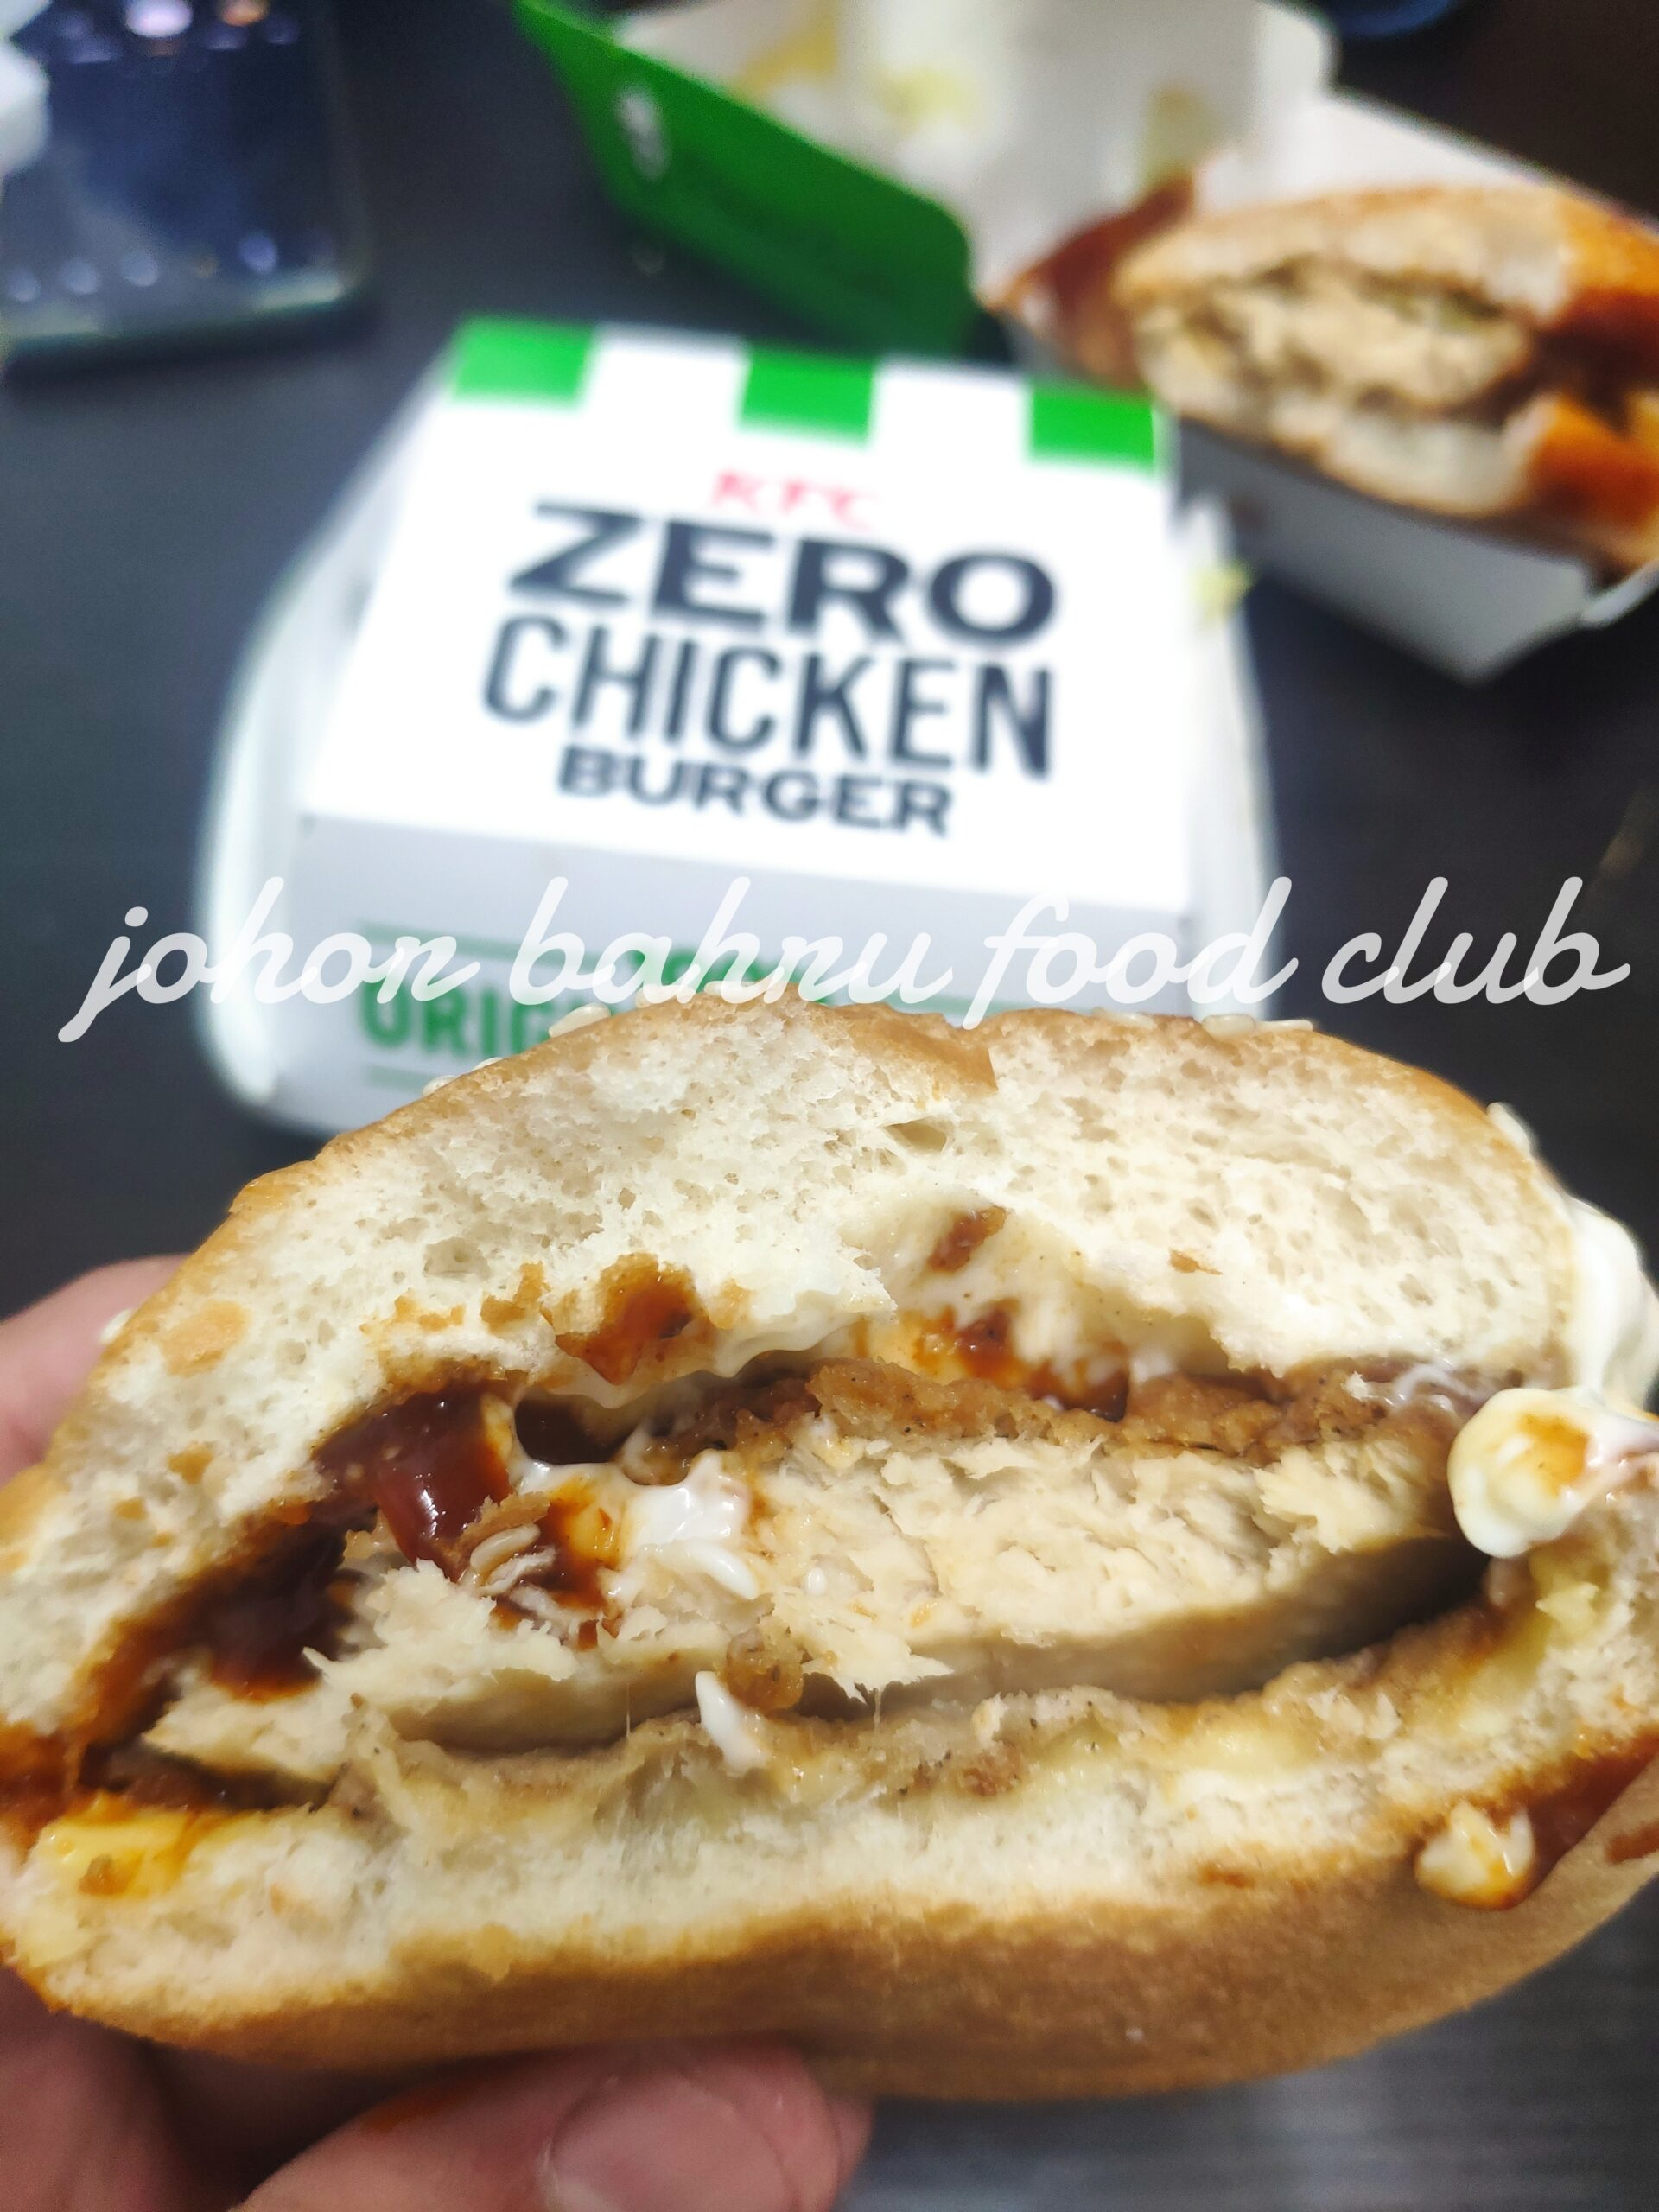 KFC Zero Chicken Burger. Gimik power, rasa ?